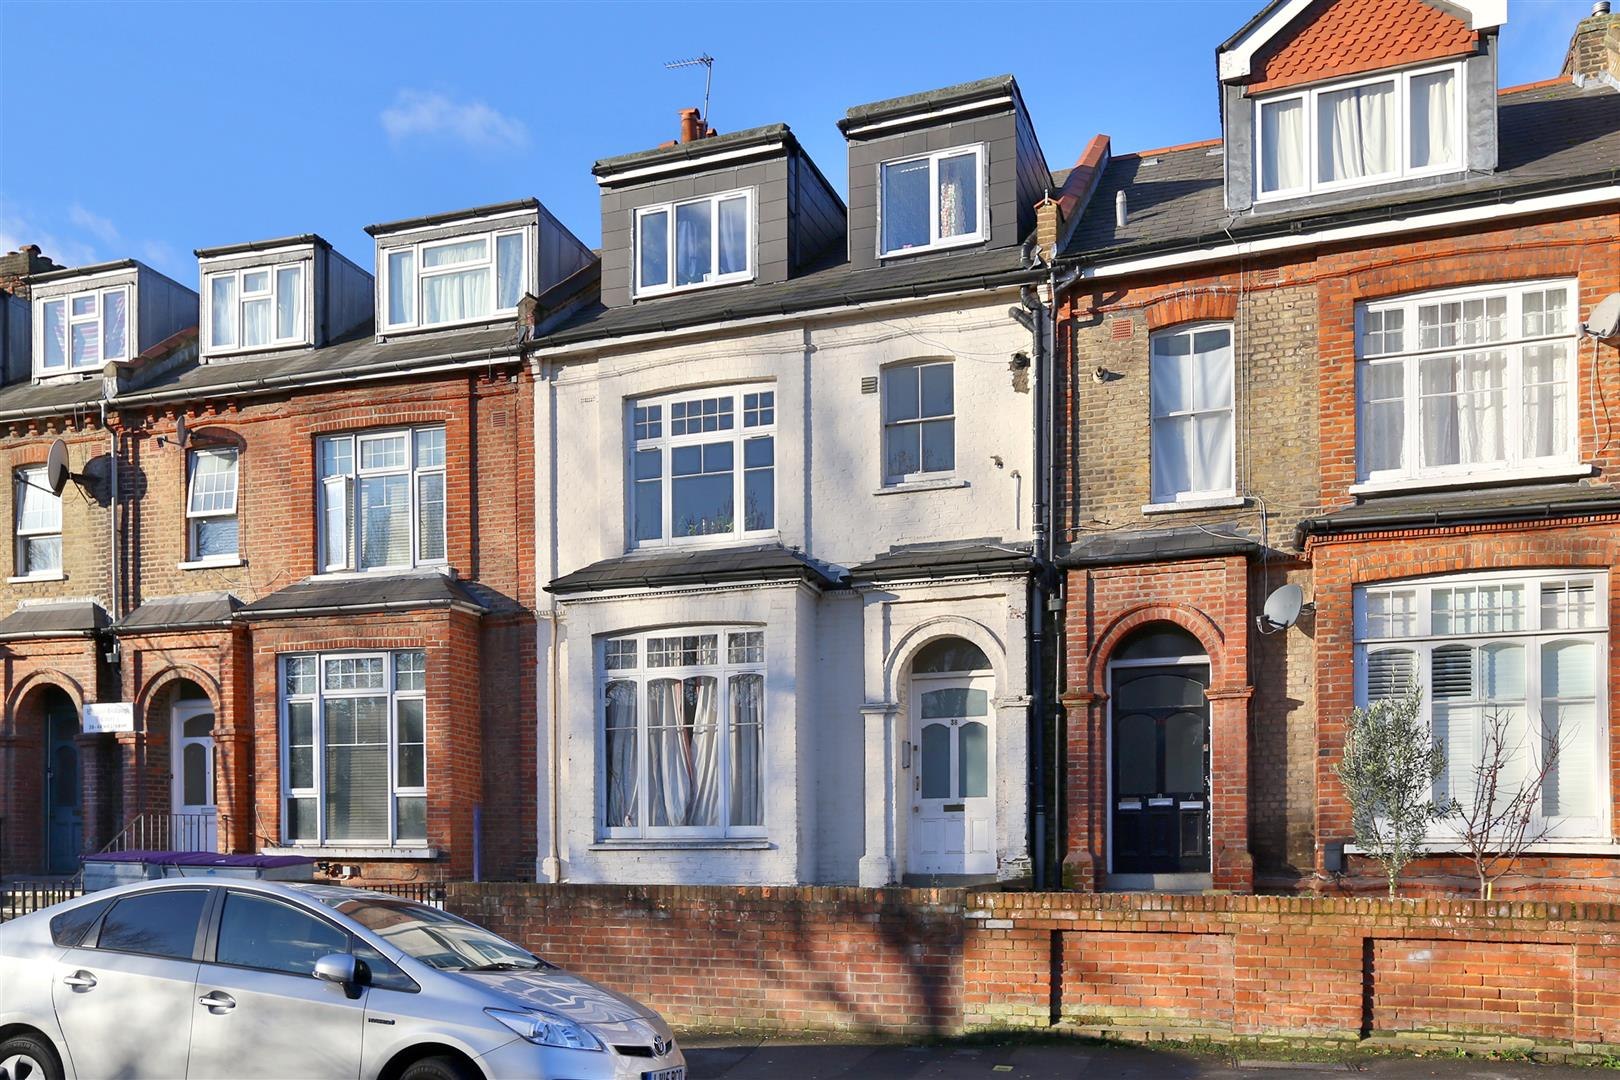 2 Bedrooms Flat for sale in West Bank, London